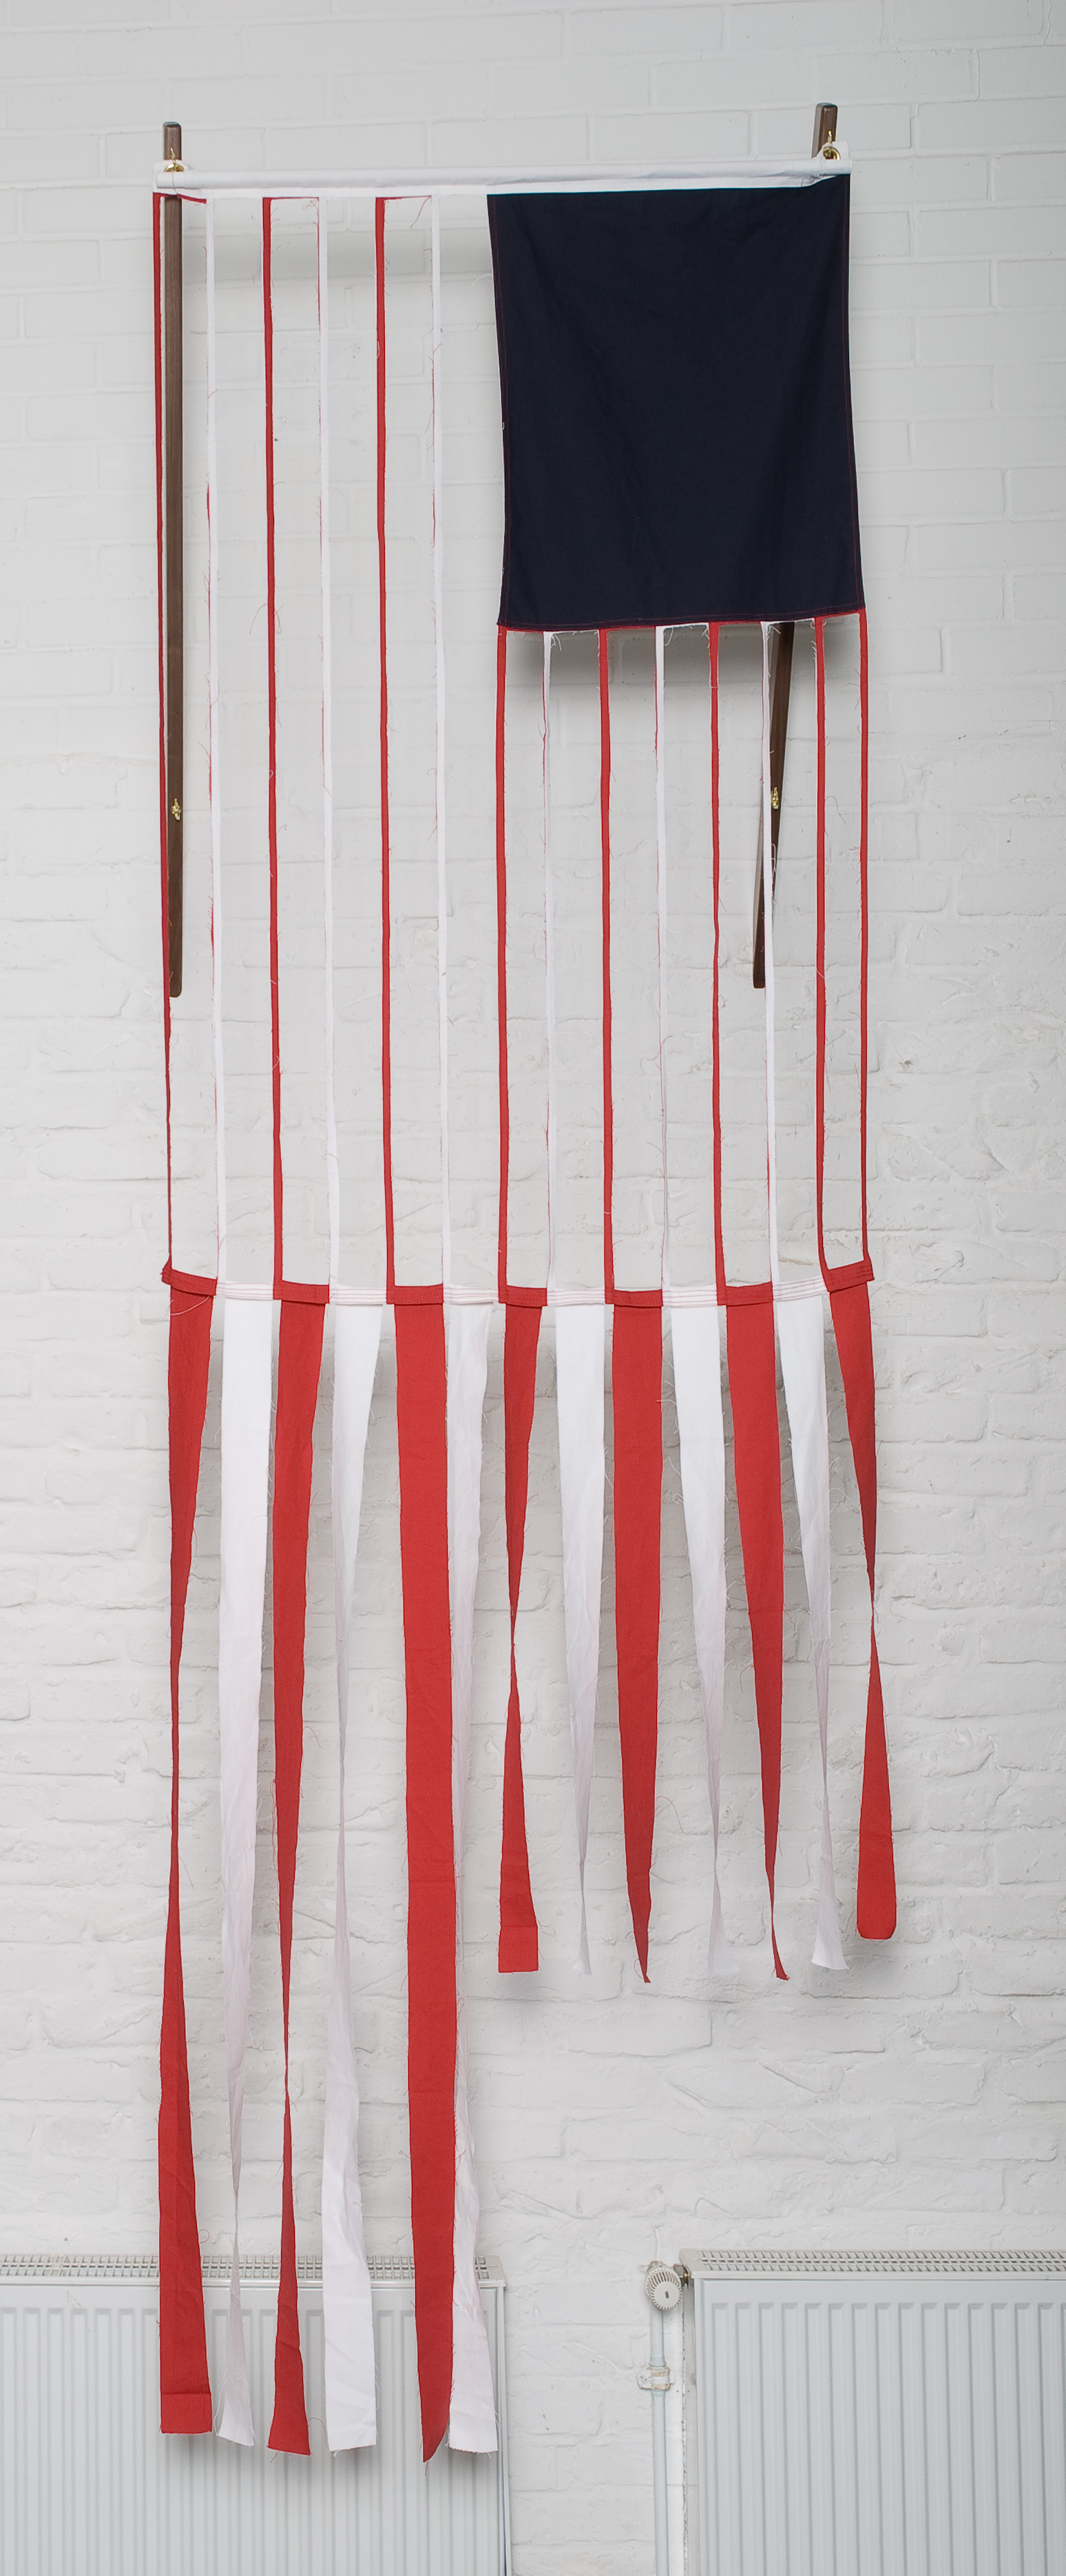 Red/White Stripes, 2008 cotton canvas 152 x 91 cm - 59 7/8 x 35 7/8 inches